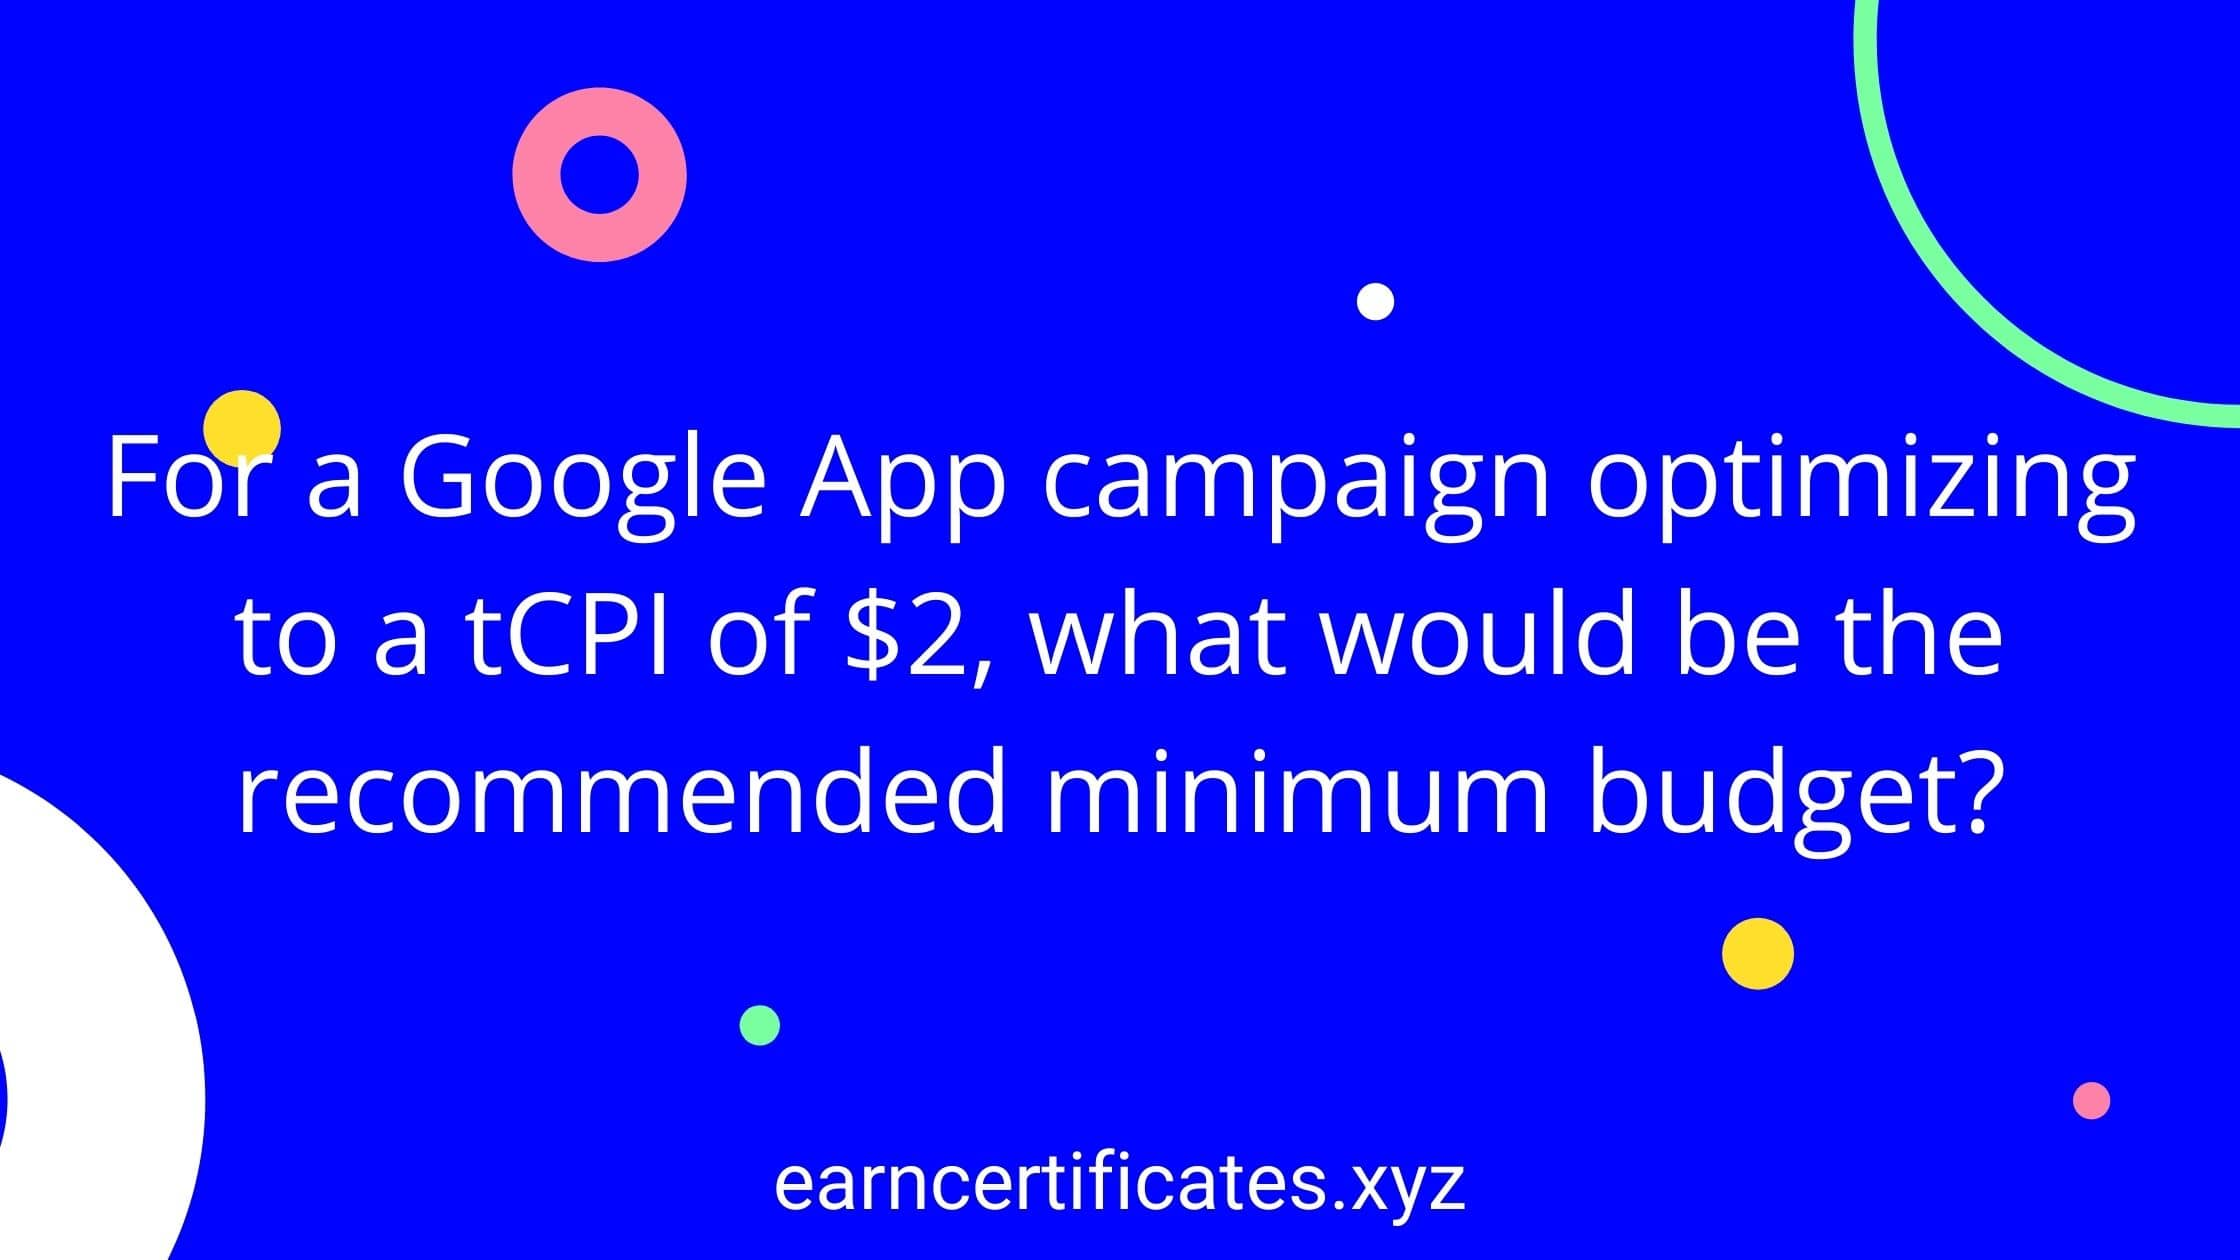 For a Google App campaign optimizing to a tCPI of $2, what would be the recommended minimum budget?